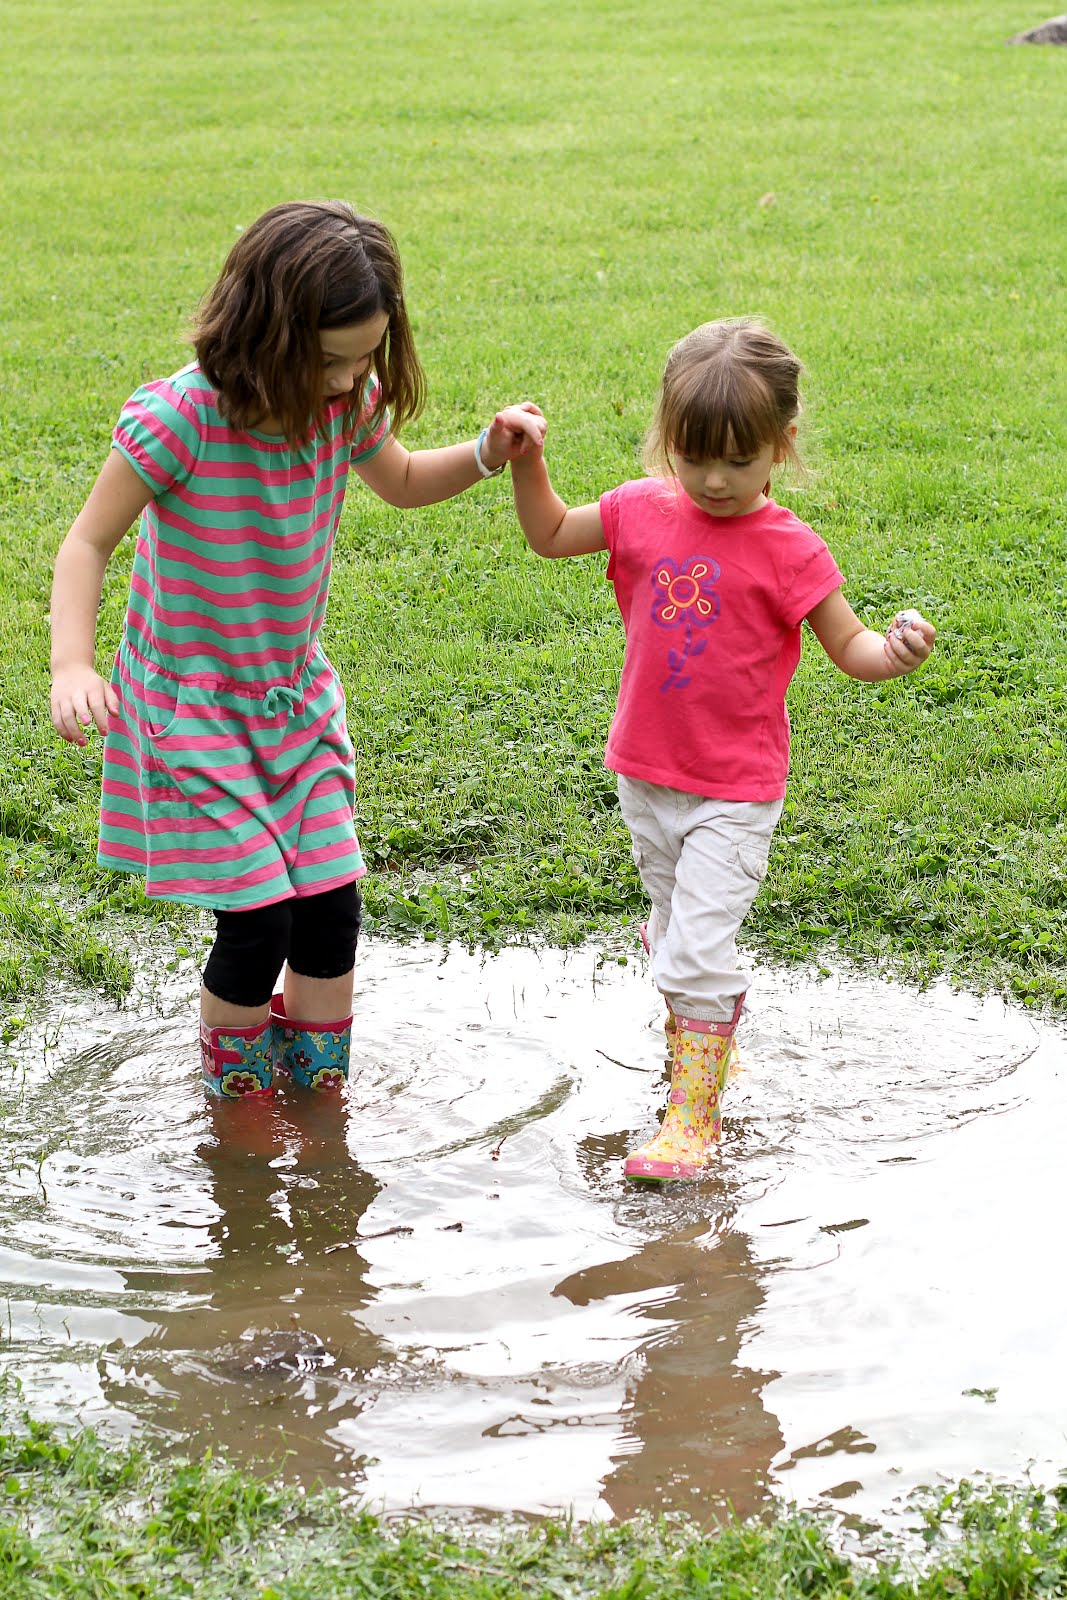 Our new adventures: Puddle jumping in our front yard